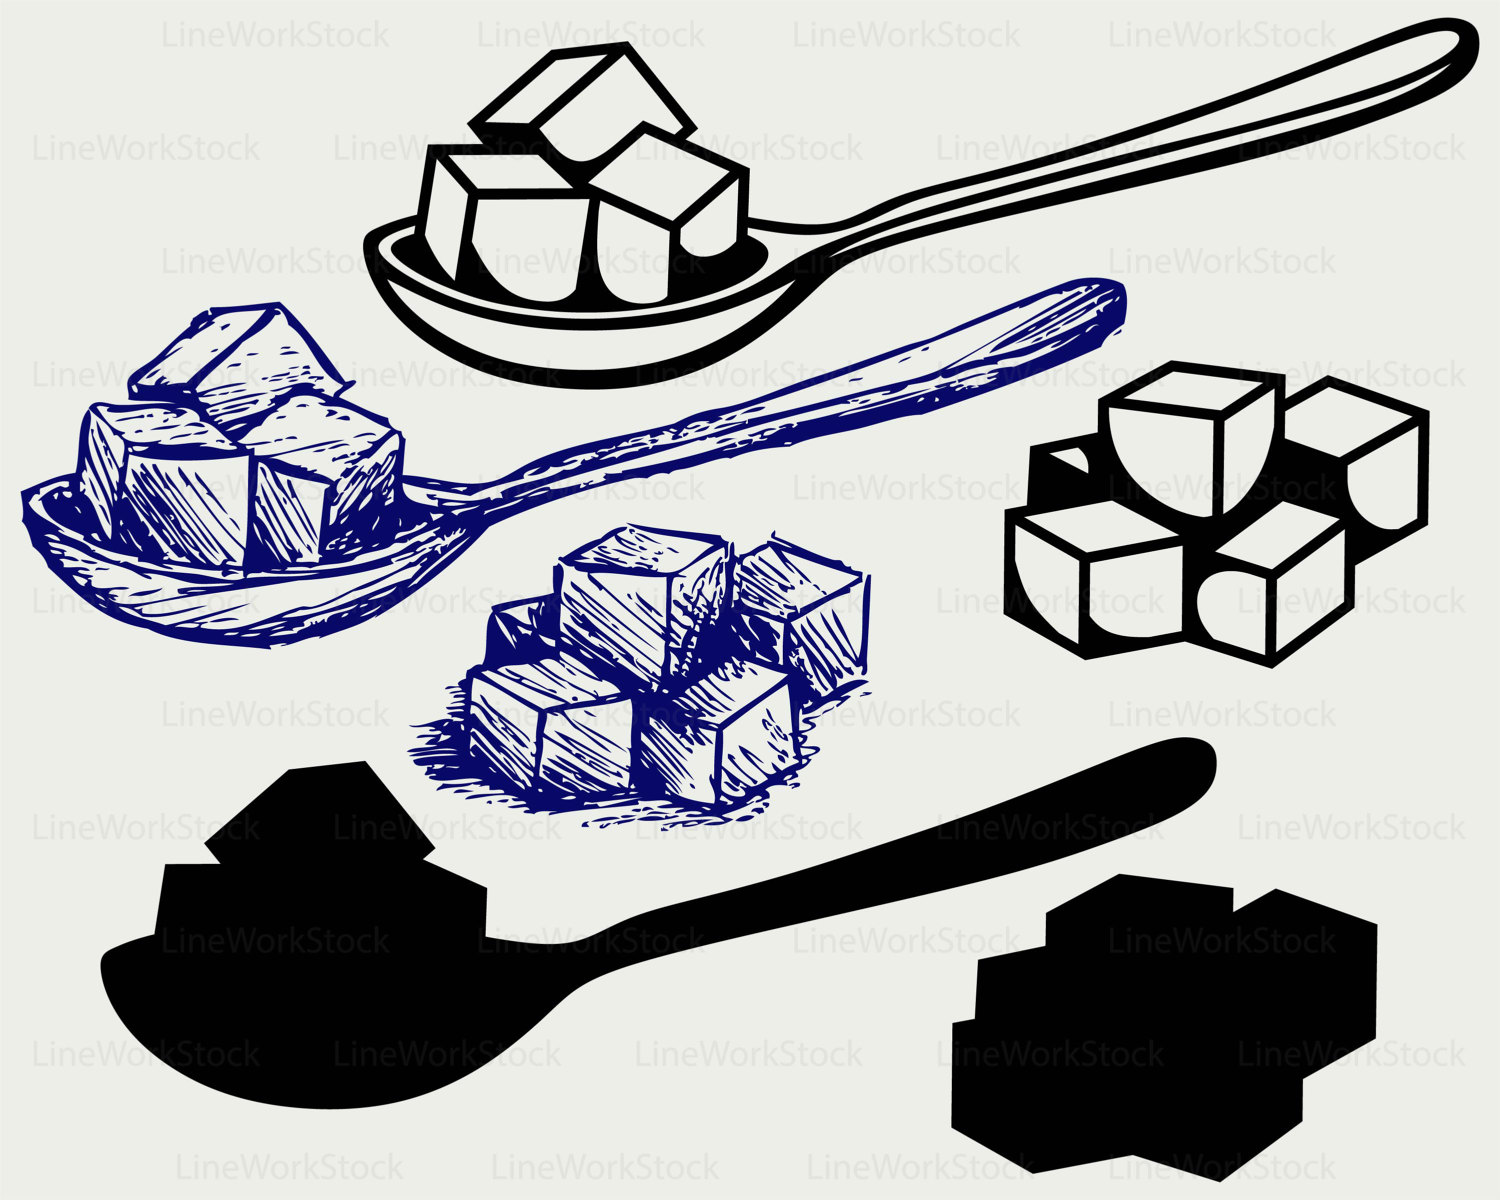 Refined sugar svg,sugar clipart,refined sugar svg,silhouette,food.